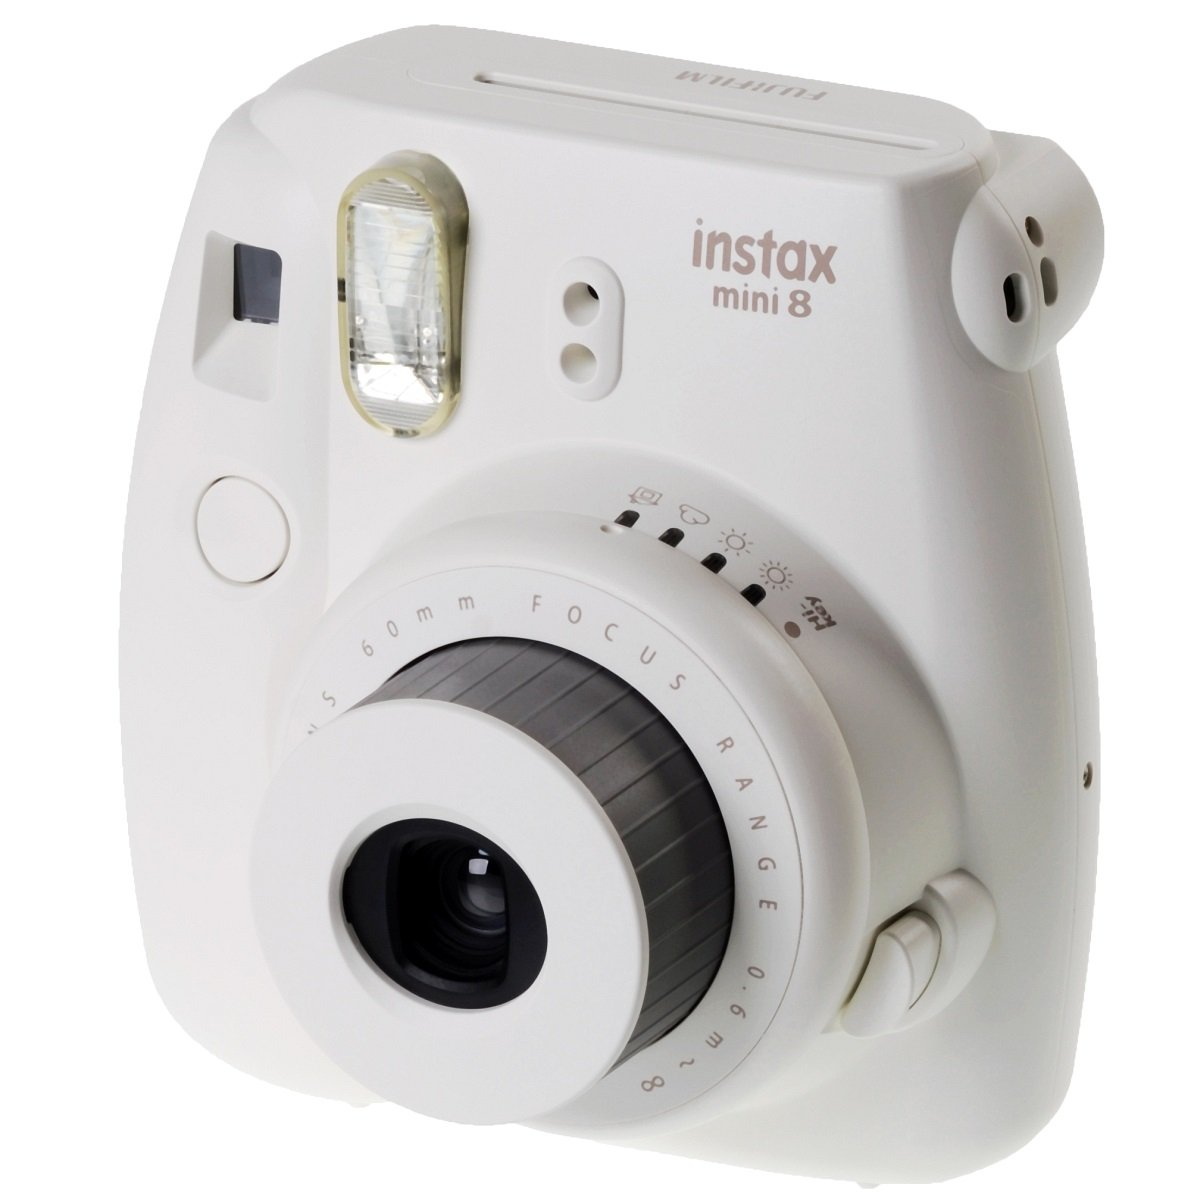 fuji instax mini 8 instant photo camera white instant pictures in seconds new ebay. Black Bedroom Furniture Sets. Home Design Ideas